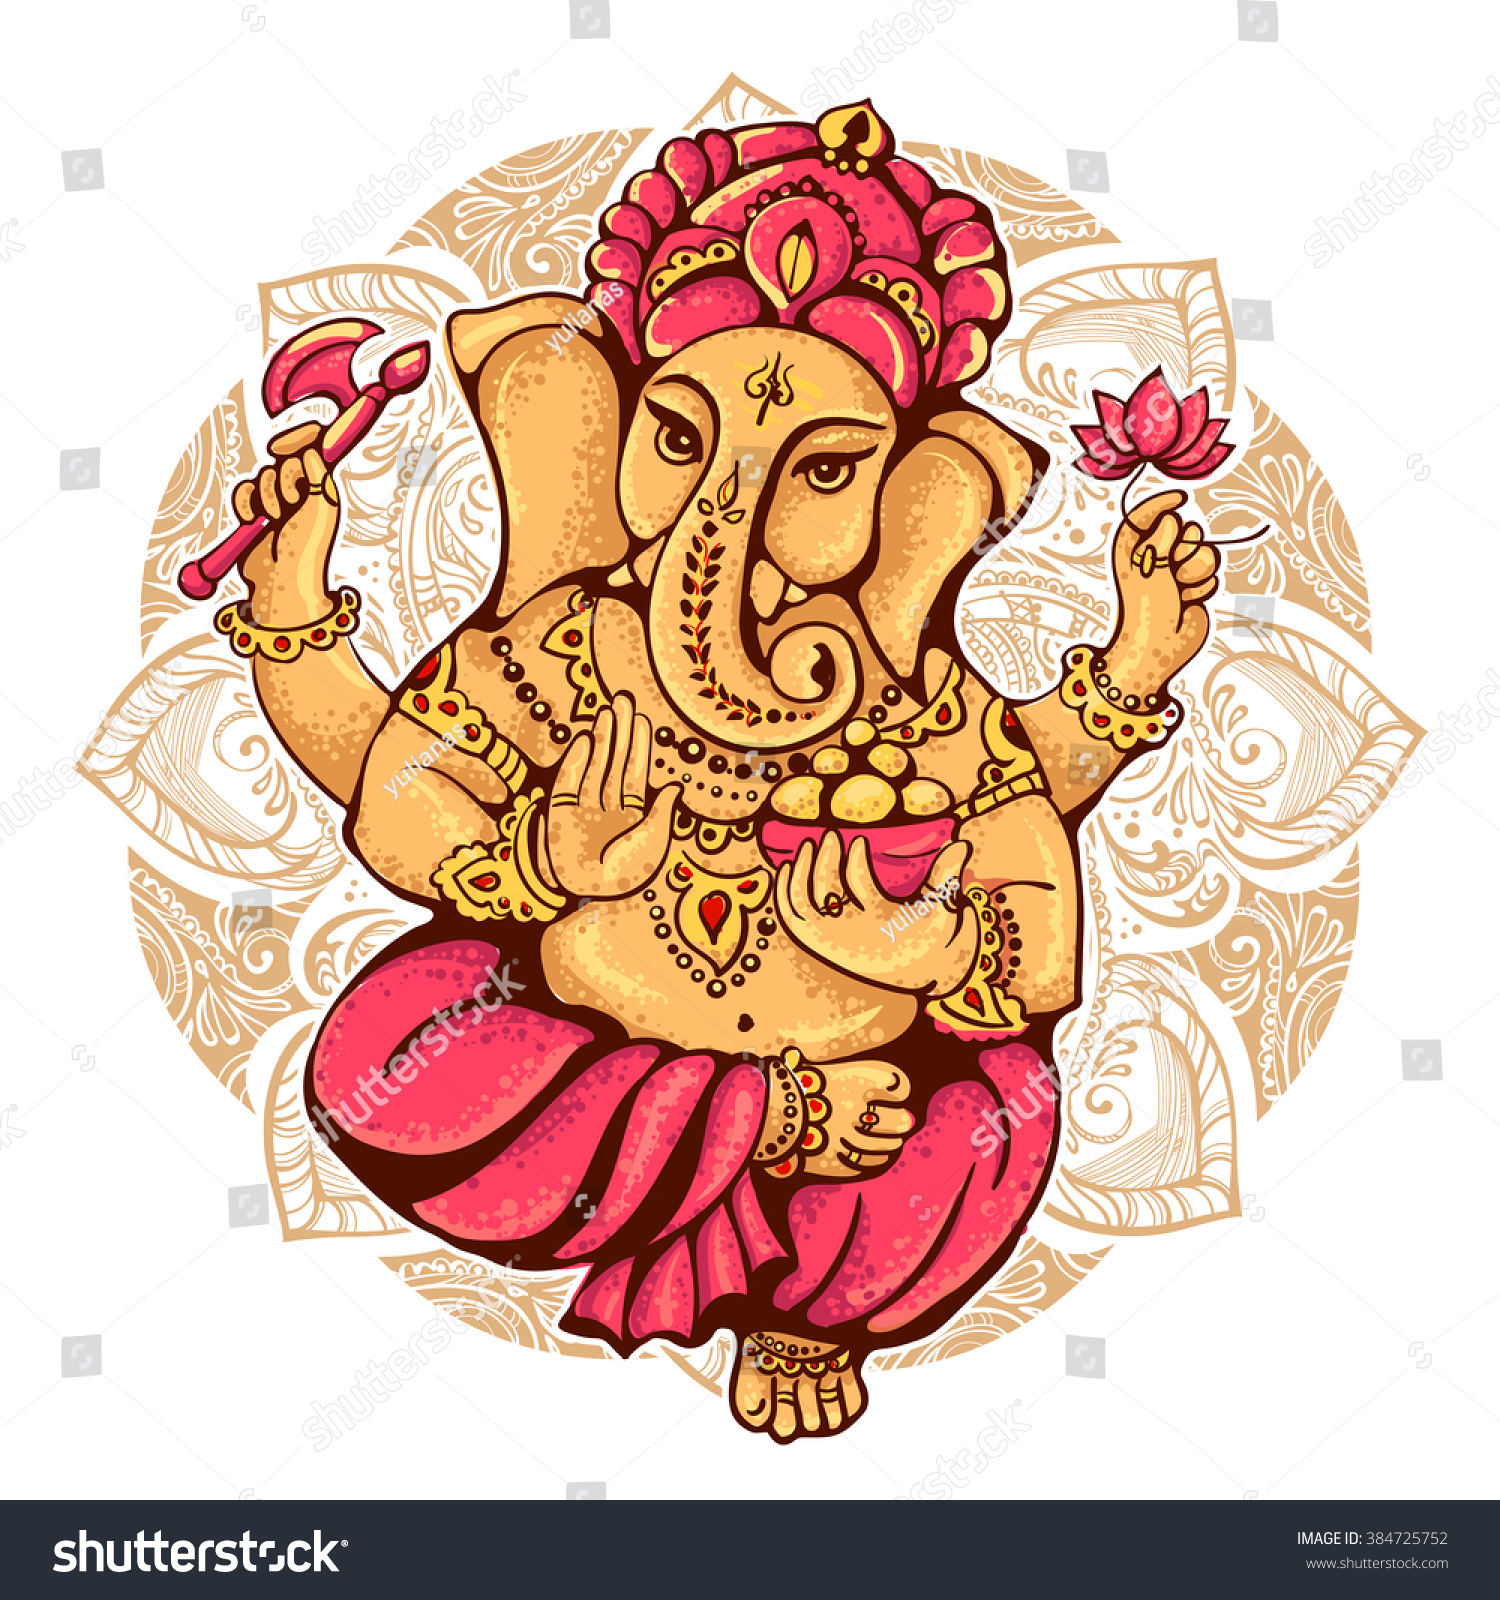 lord ganesha posters pictures to pin on pinterest tattooskid. Black Bedroom Furniture Sets. Home Design Ideas